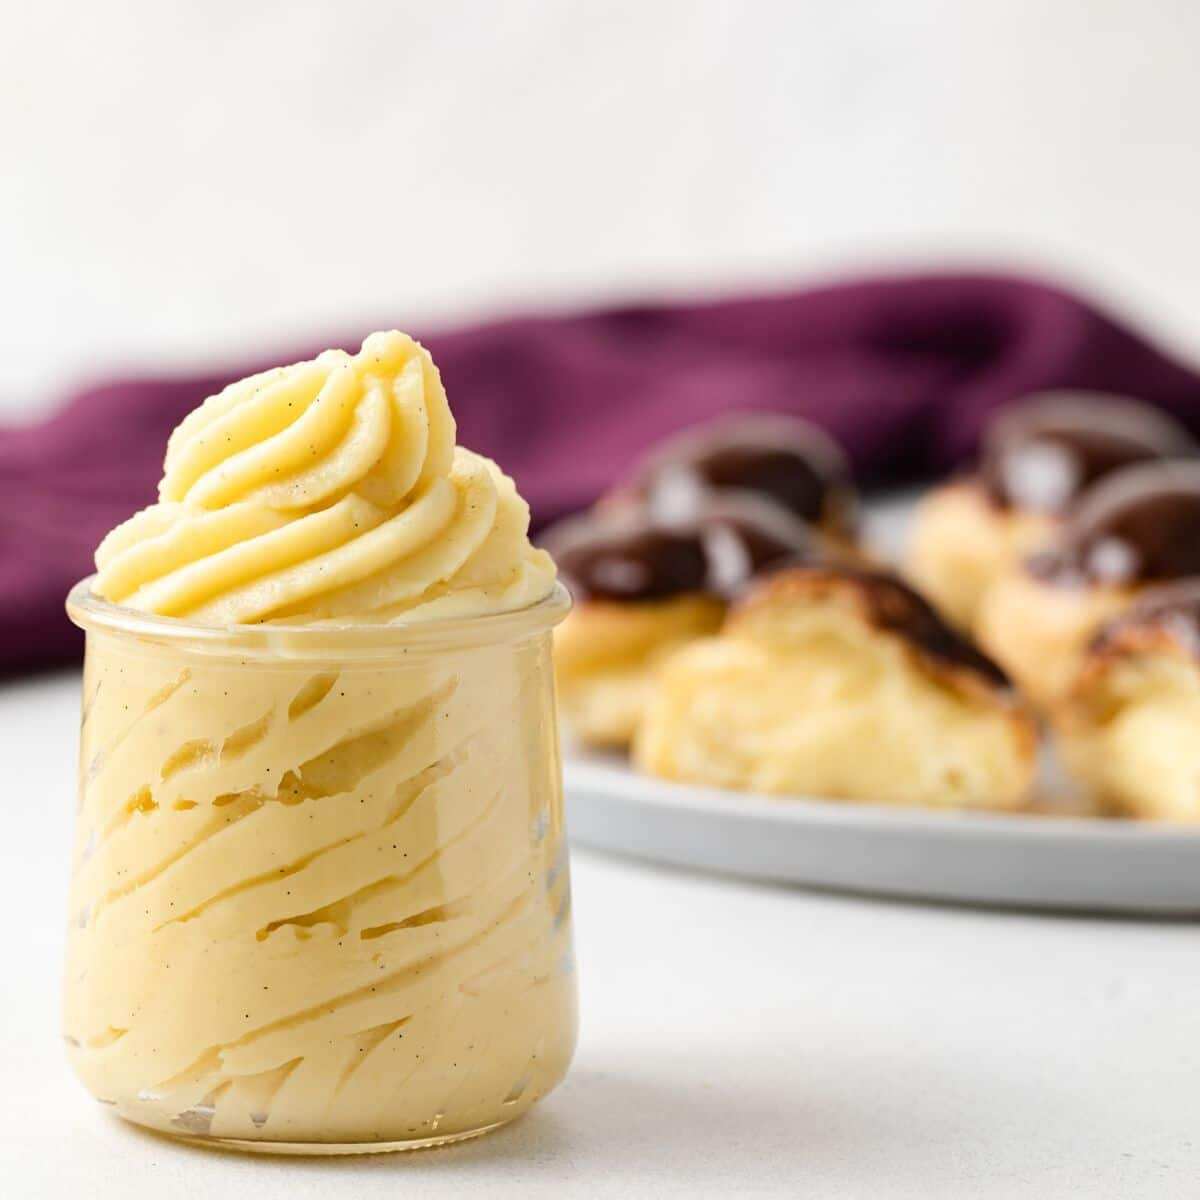 Pastry cream in a glass jar.